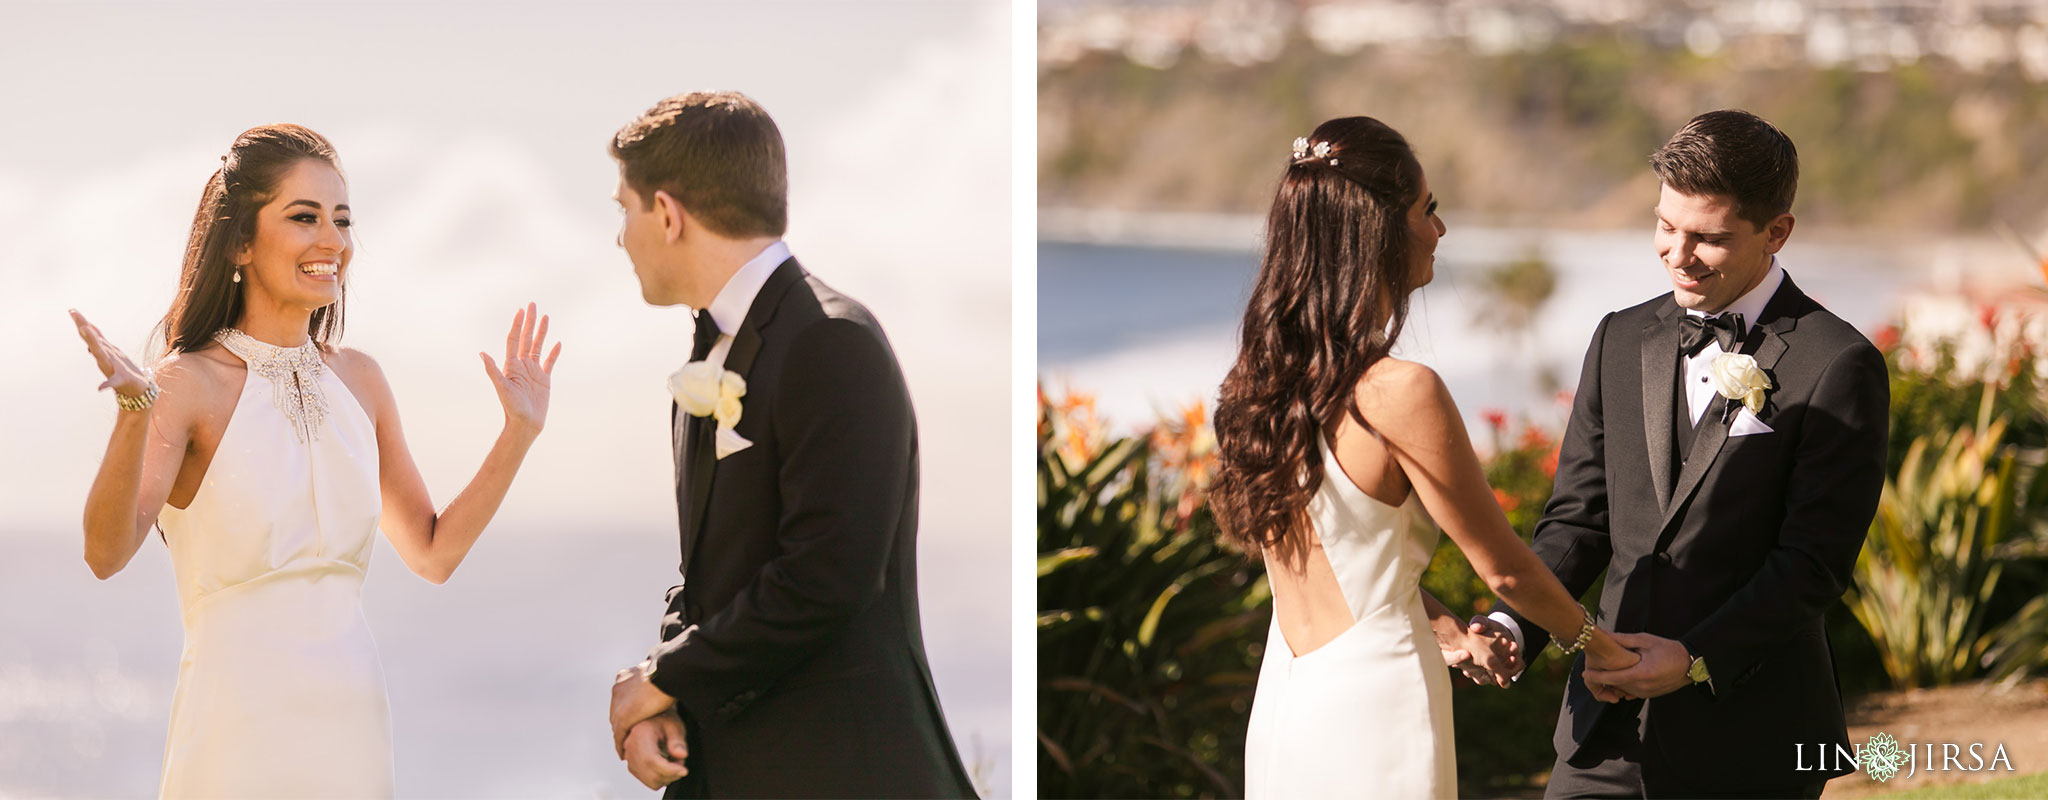 09 Ritz Carlton Laguna Niguel Wedding Photography